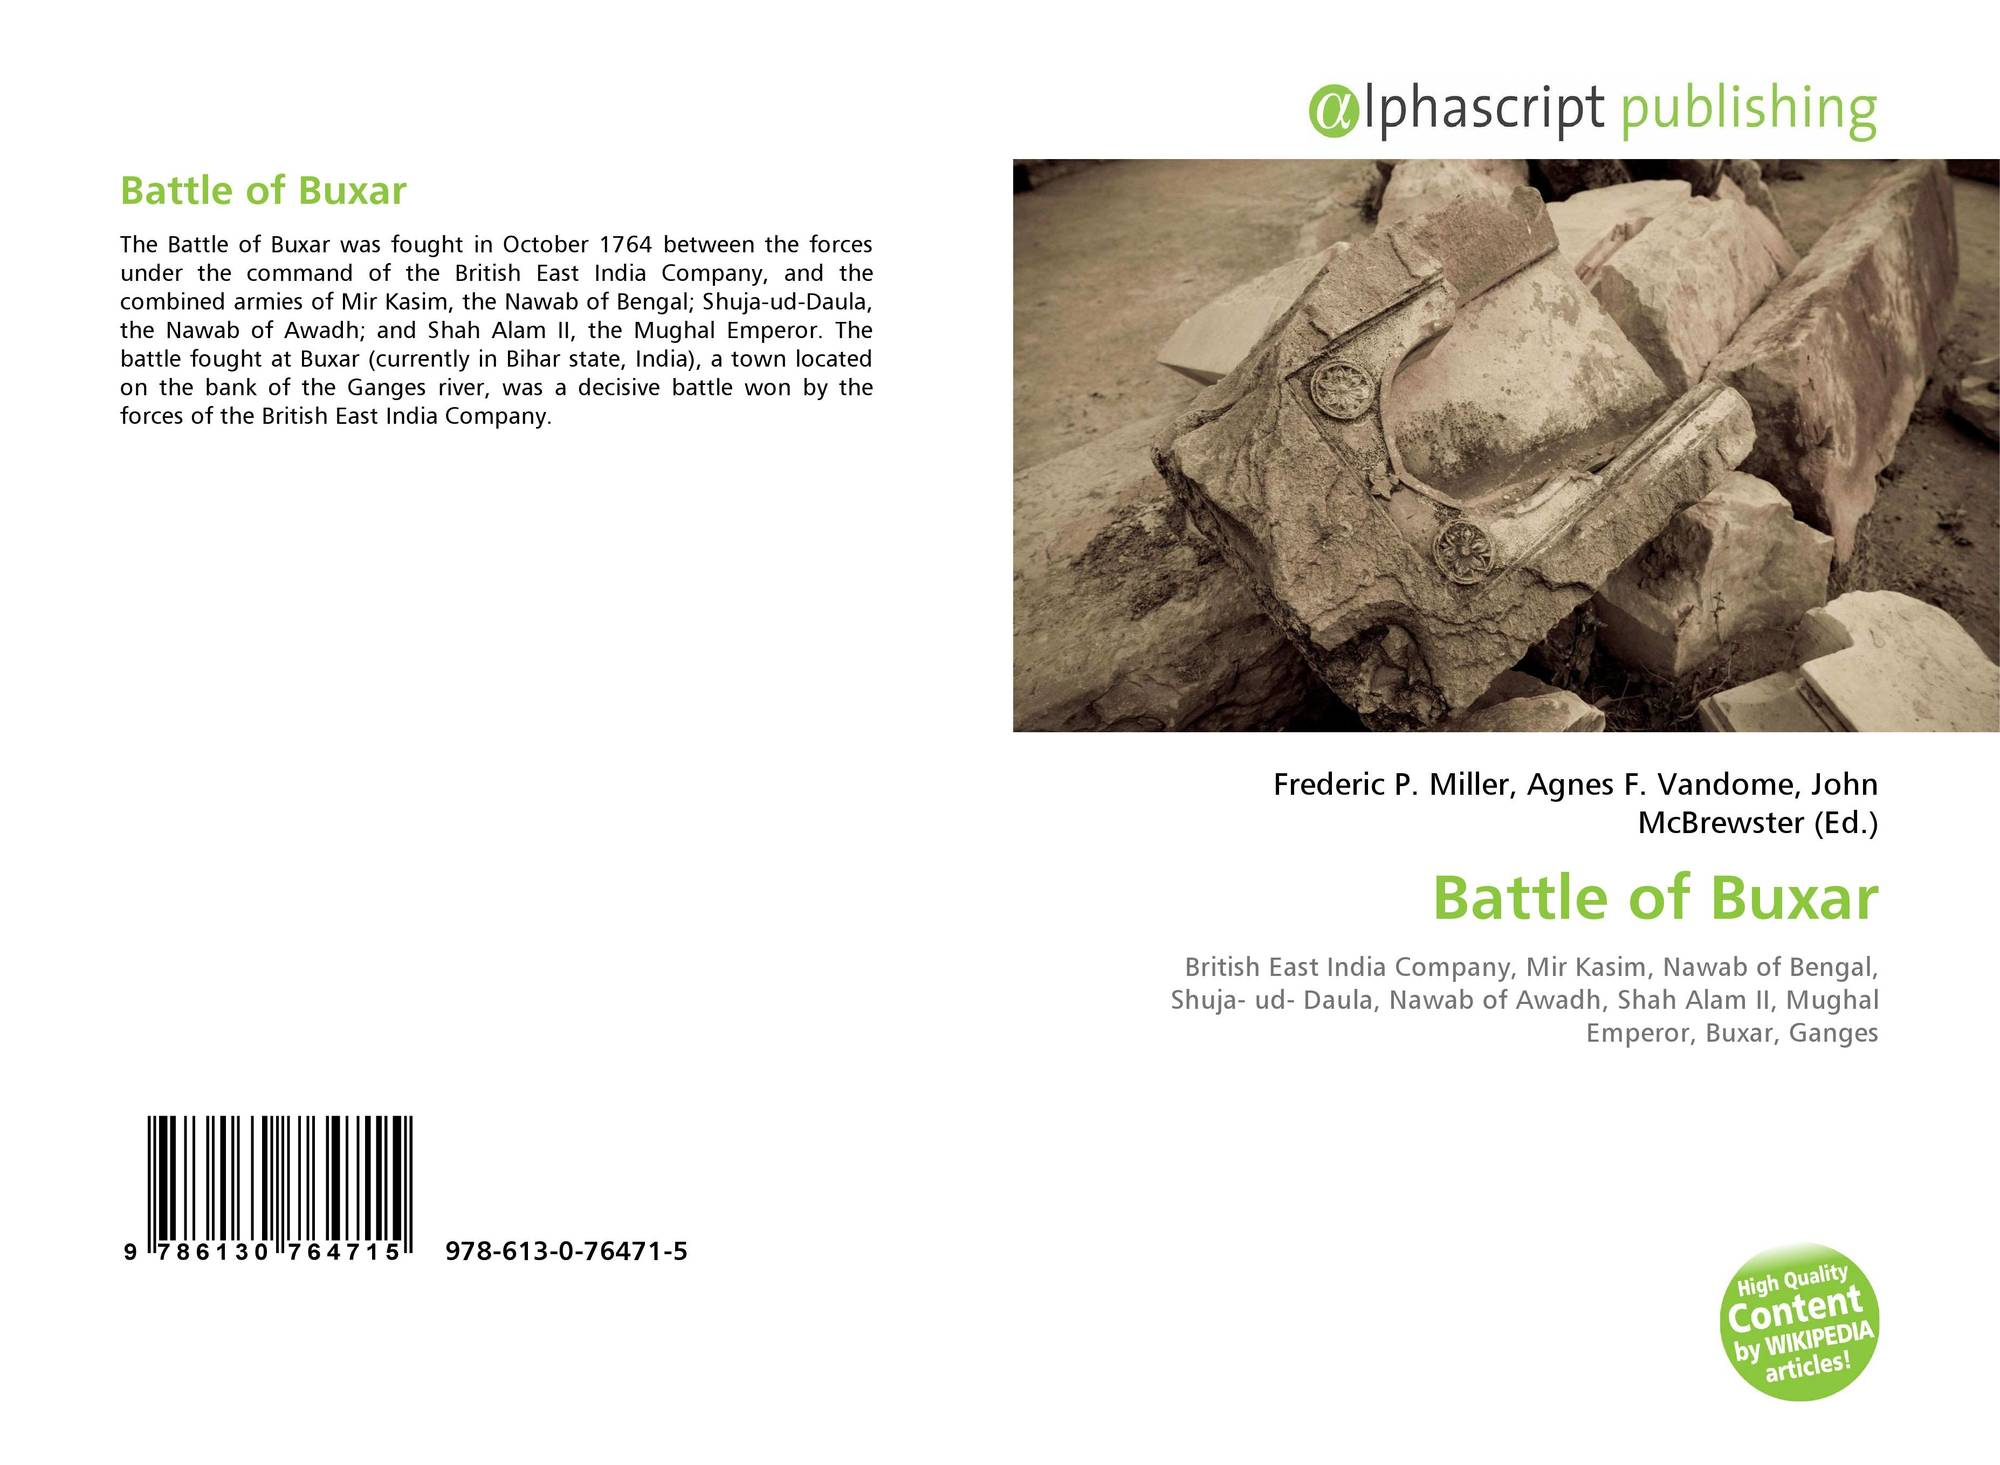 battle of buxar Battle of buxar's wiki: the battle of buxar was fought on 23 october 1764 between the forces under the command of the british east india company led by hector munro and the combined armies of mir qasim, the nawab of bengal the nawab of awadh and the mughal emperor shah alam ii.